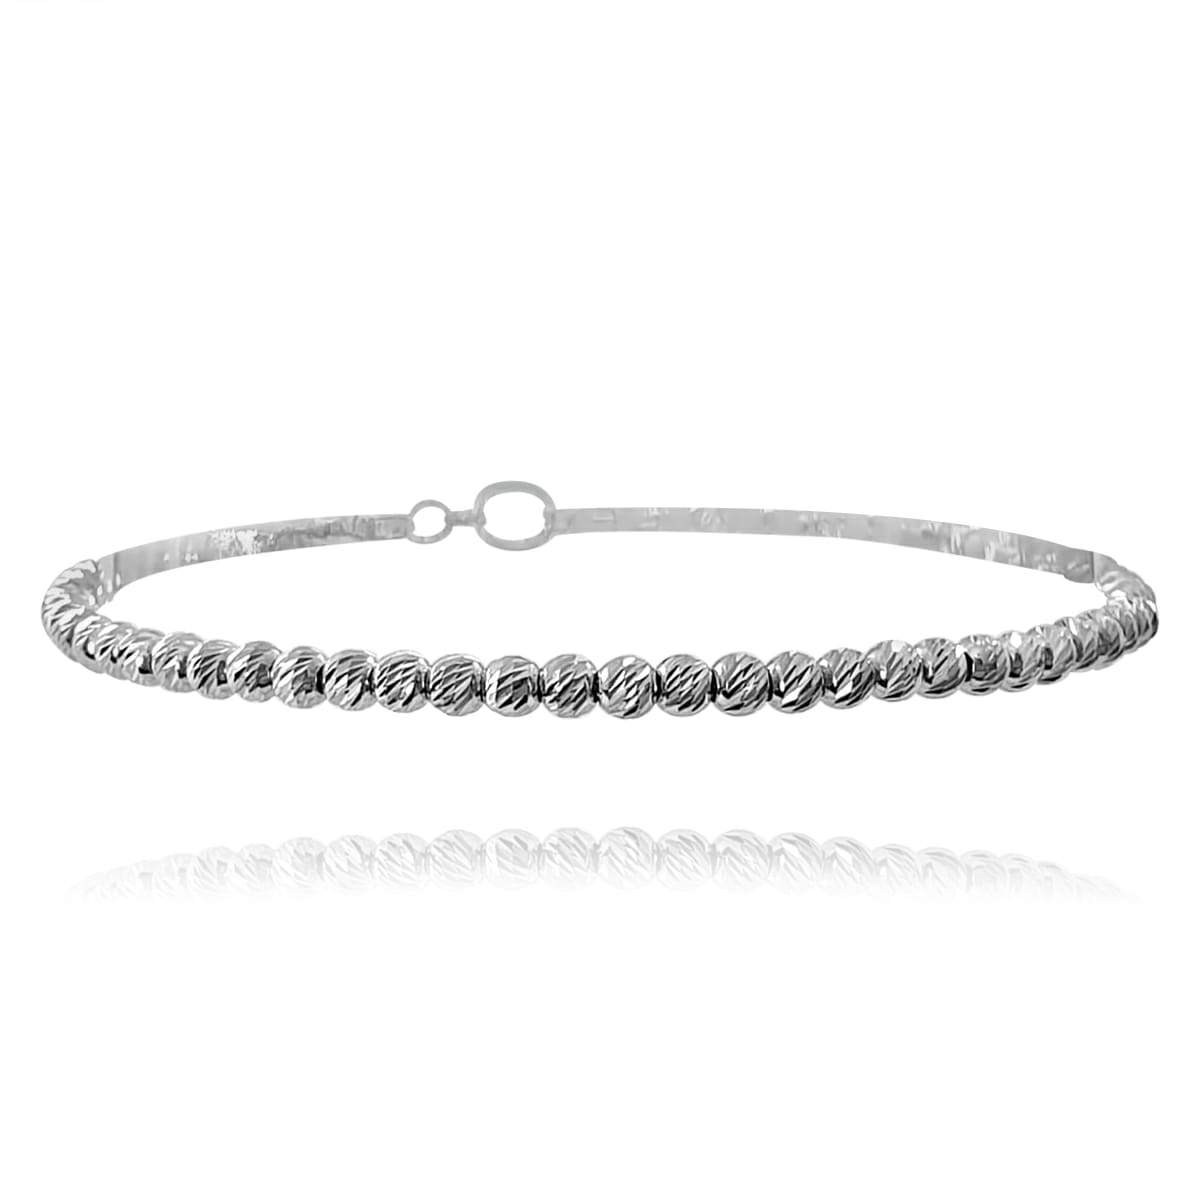 Bracelet with Laser Cutting Sterling silver 925